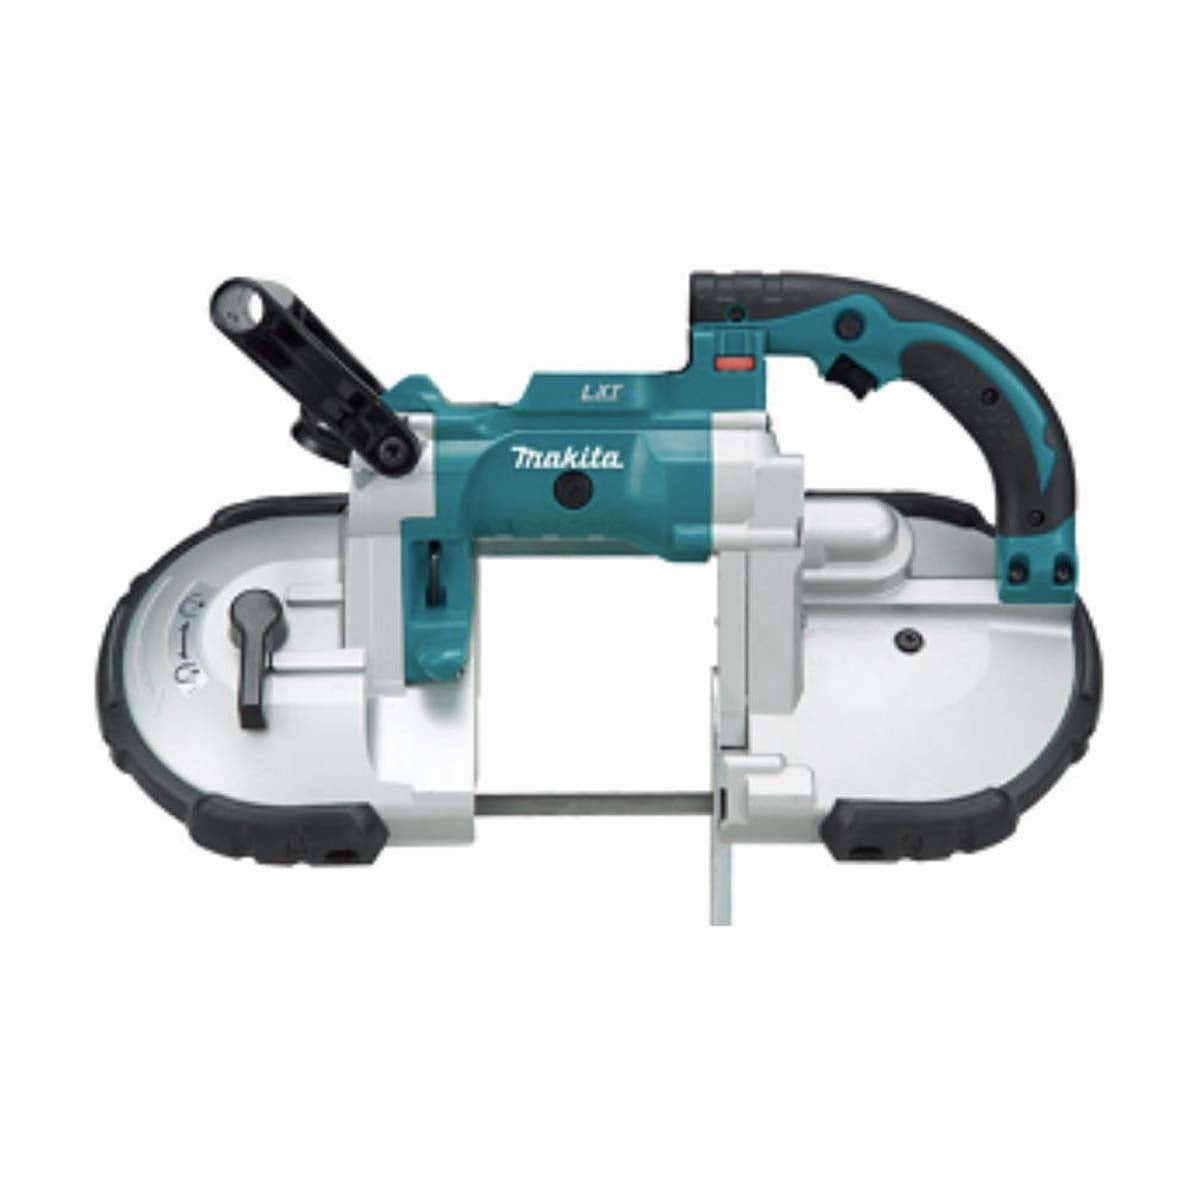 Makita Cordless Mobile Band Saw 18V - Bare Unit (DPB180Z)